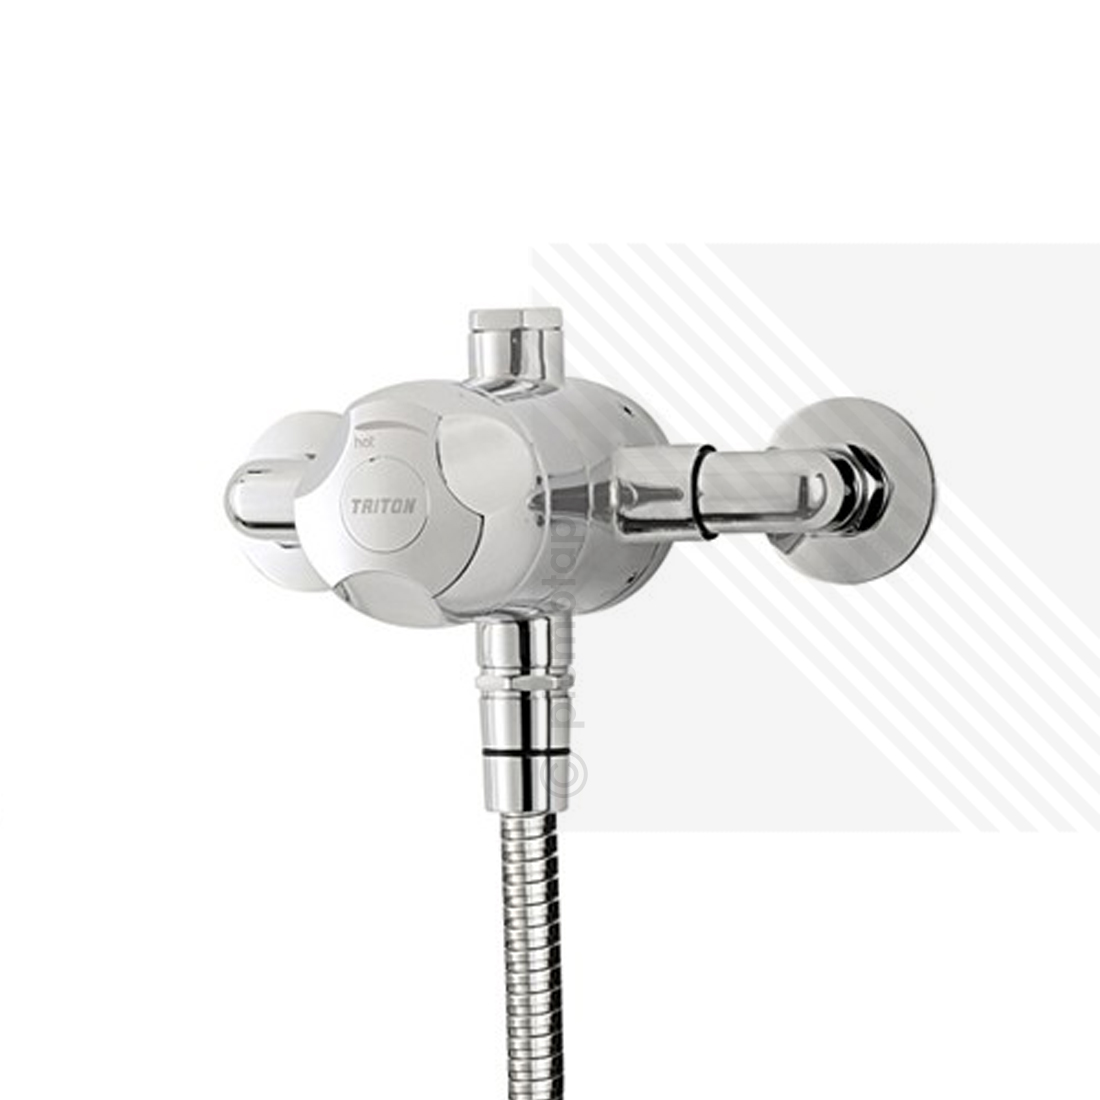 High Quality Professional Design Thermostatic Mixer Valve: Triton Dove Sequential Exposed Thermostatic Shower Mixer